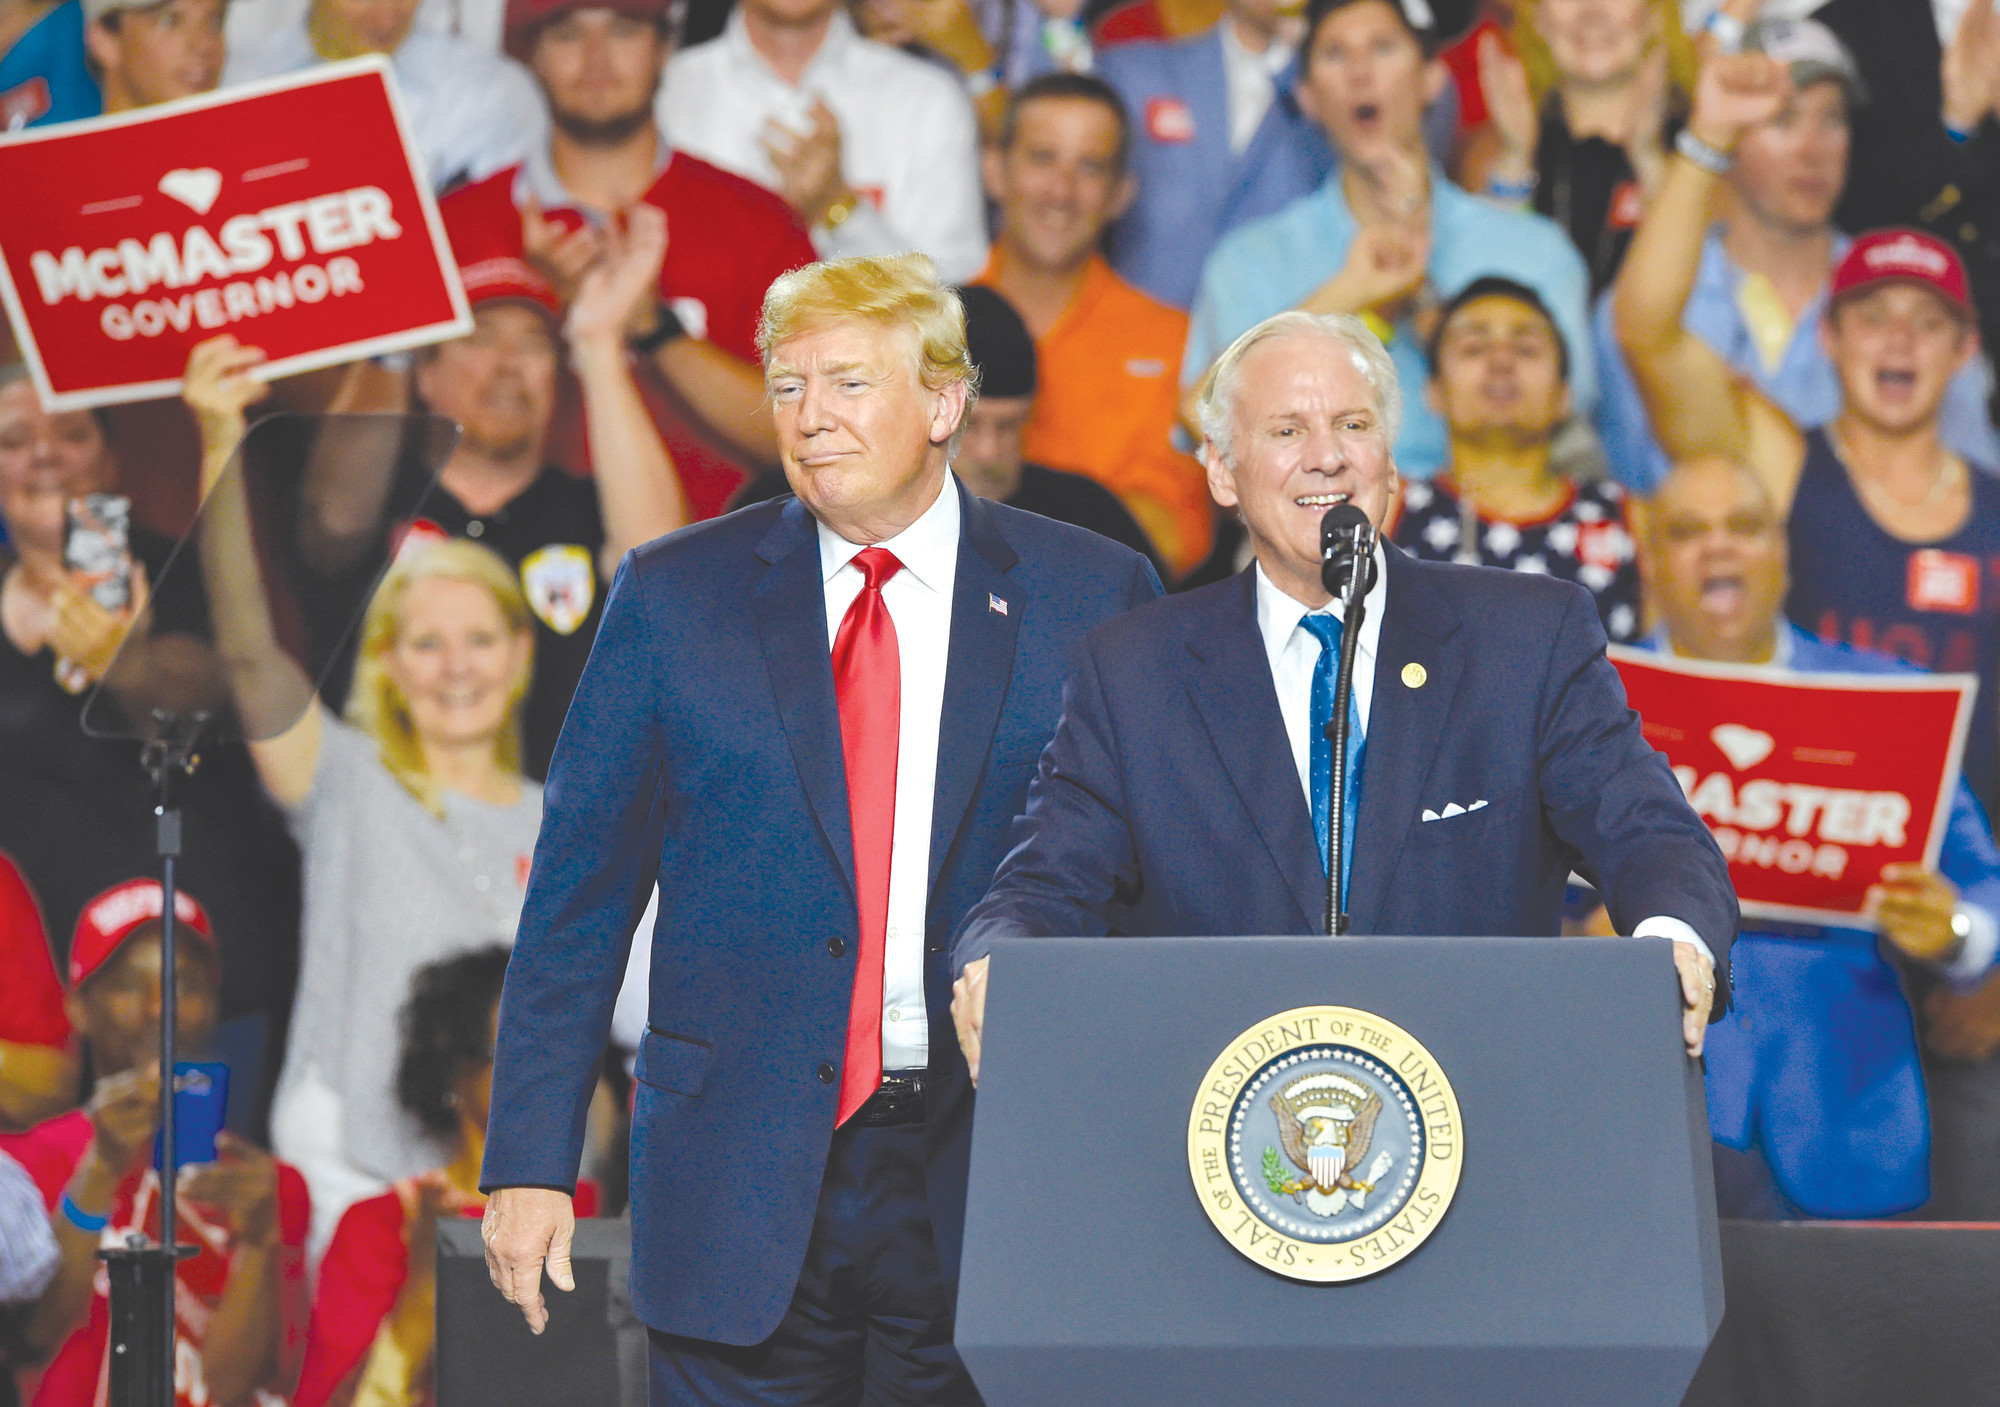 In this Monday, June 25, 2018, file photo, South Carolina Gov. Henry McMaster, right, with President Donald Trump, speaks to the crowd at Airport High School in West Columbia. McMaster, one of Trump's earliest and most loyal supporters, won a key runoff in the June primary as he fended off a challenge from John Warren, a self-made millionaire, to secure the Republican gubernatorial nomination. (AP Photo/Richard Shiro)